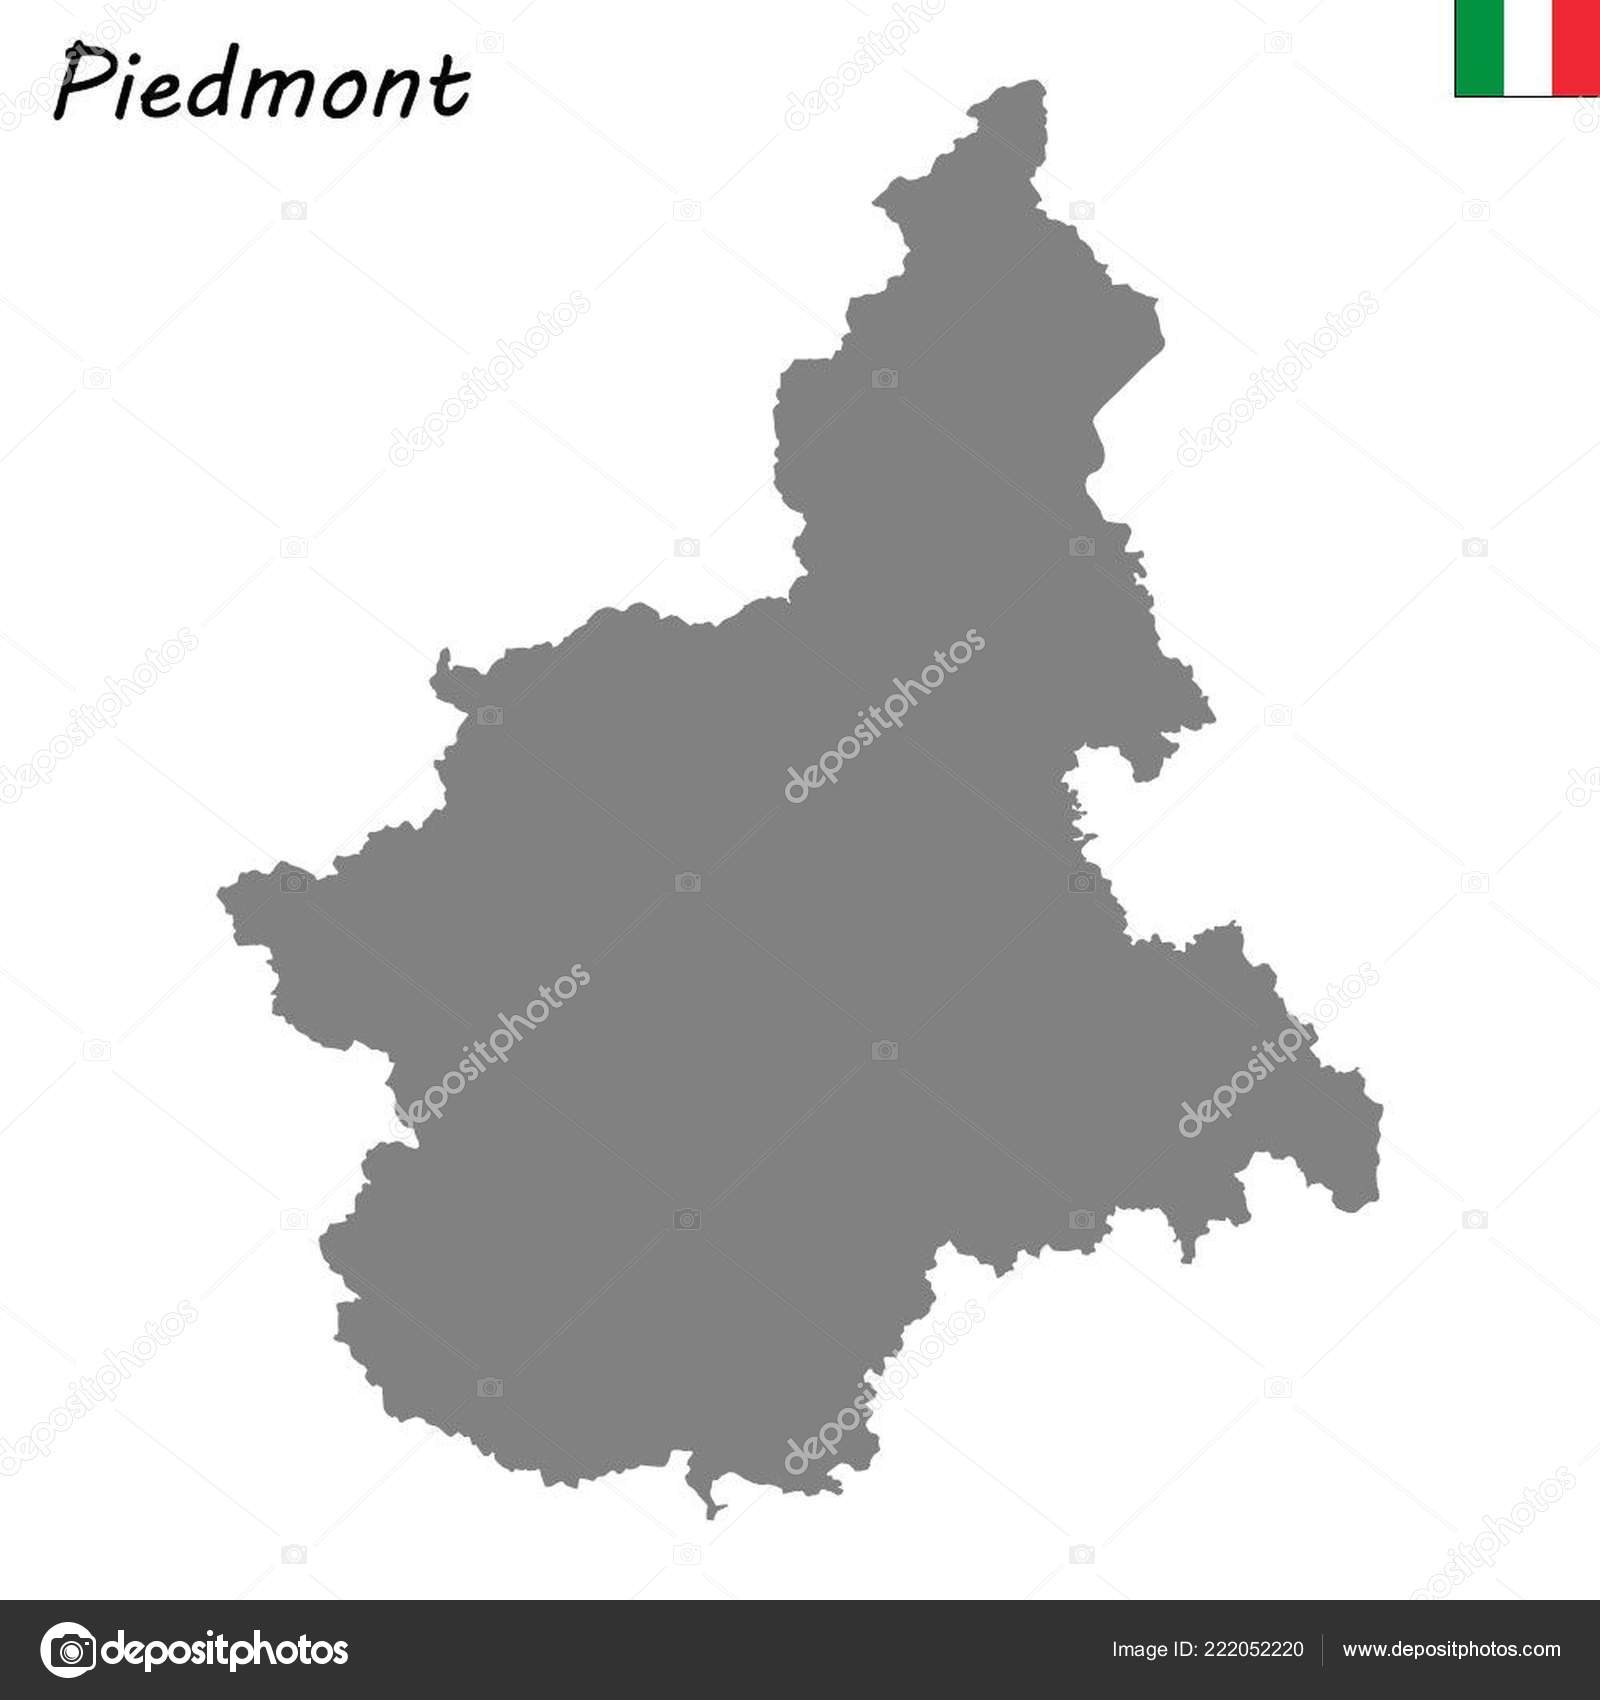 High Quality Map Piedmont Region Italy Stock Vector